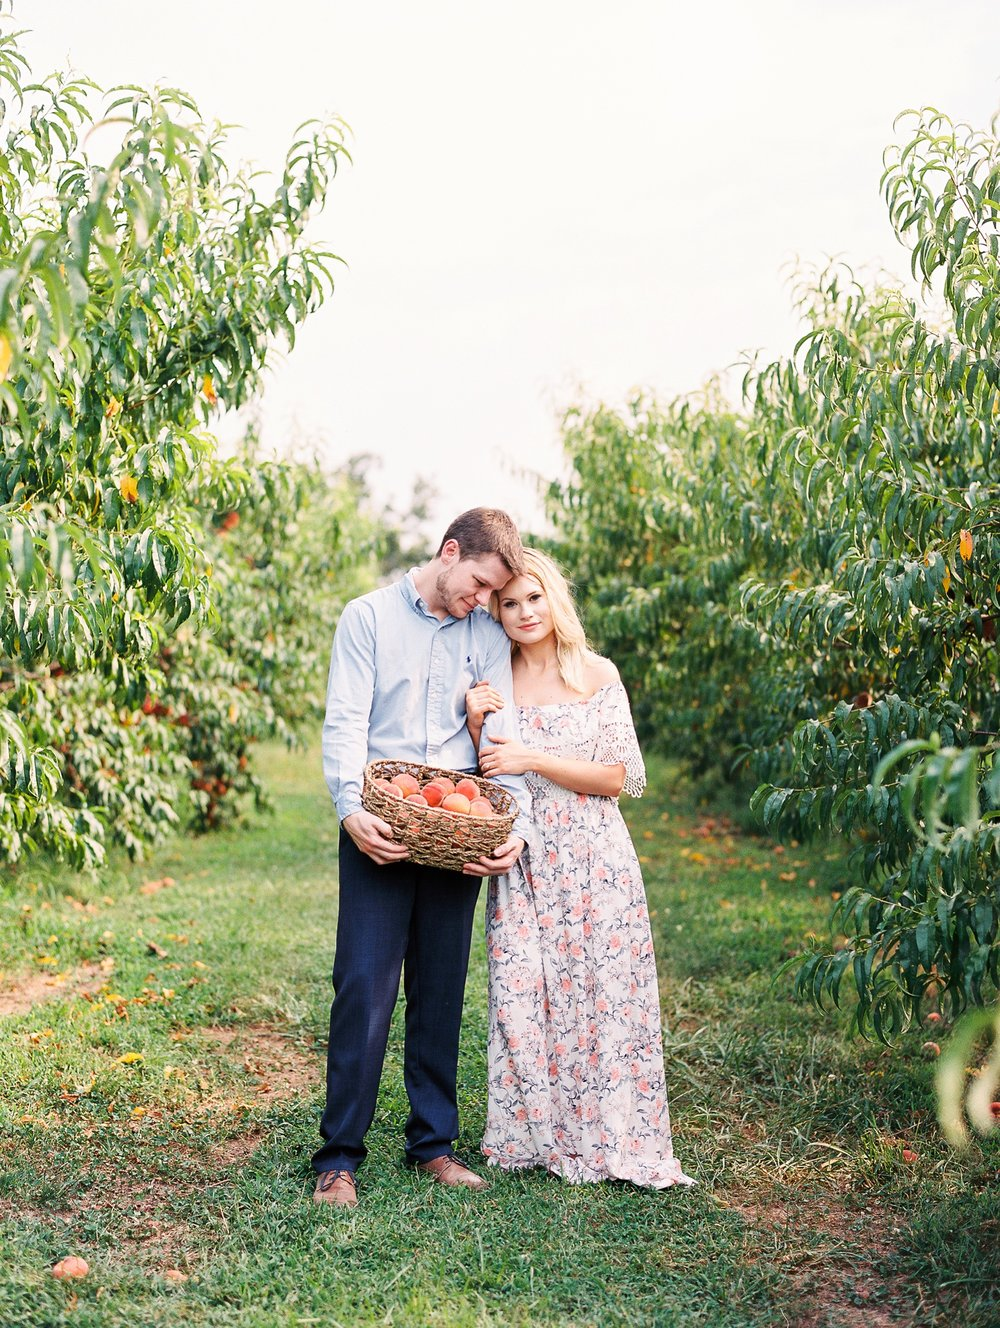 Peach-Orchard-Engagement-Session-Arkansas_0019.jpg